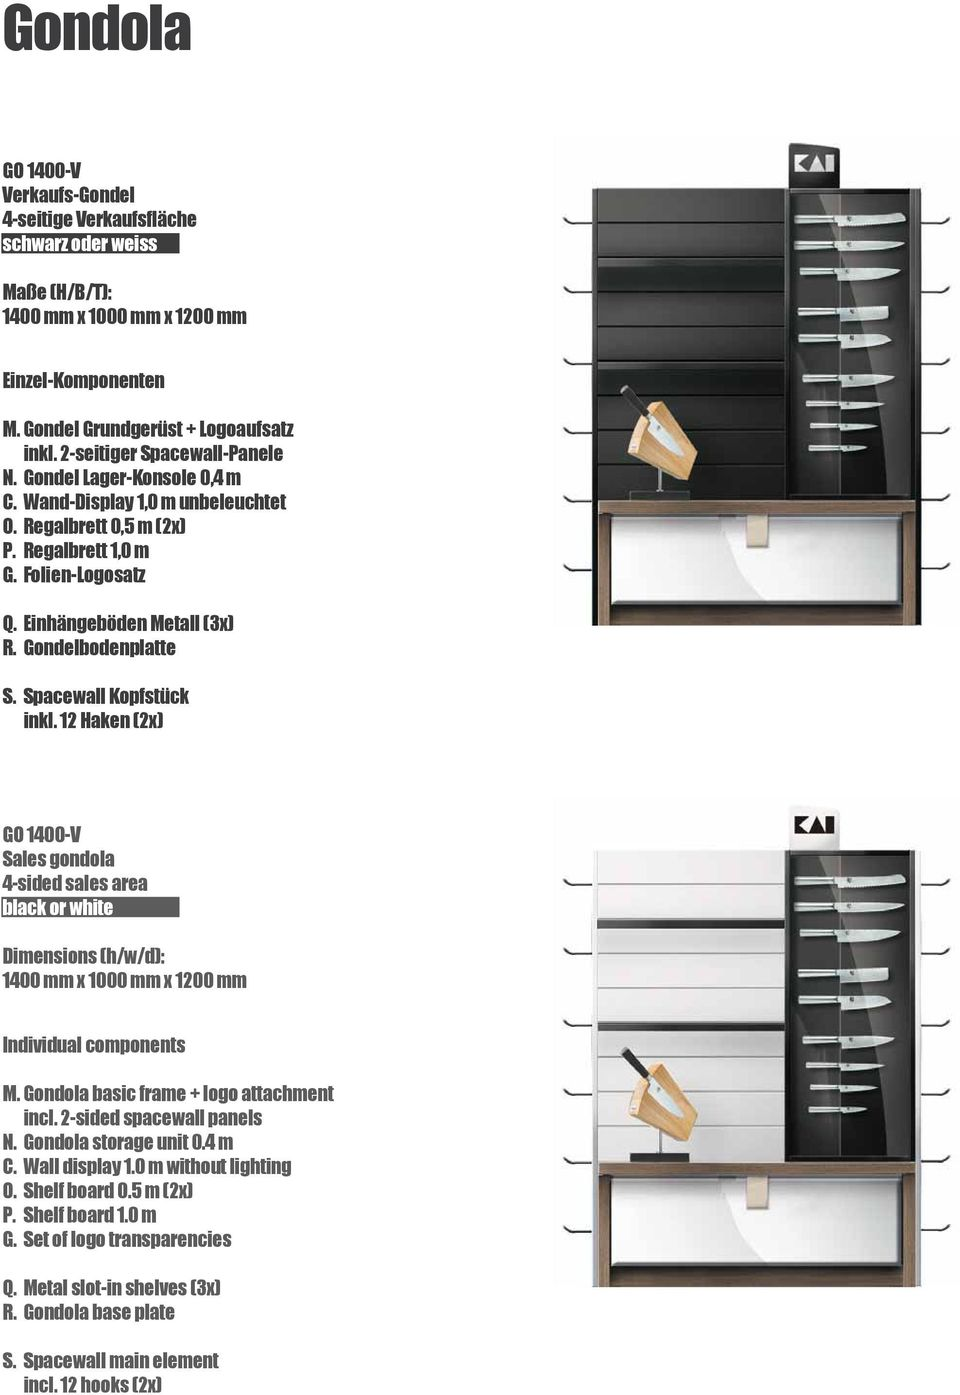 Spacewall Kopfstück inkl. 12 Haken (2x) GO 1400-V Sales gondola 4-sided sales area black or white 1400 mm x 1000 mm x 1200 mm M. Gondola basic frame + logo attachment incl. 2-sided spacewall panels N.